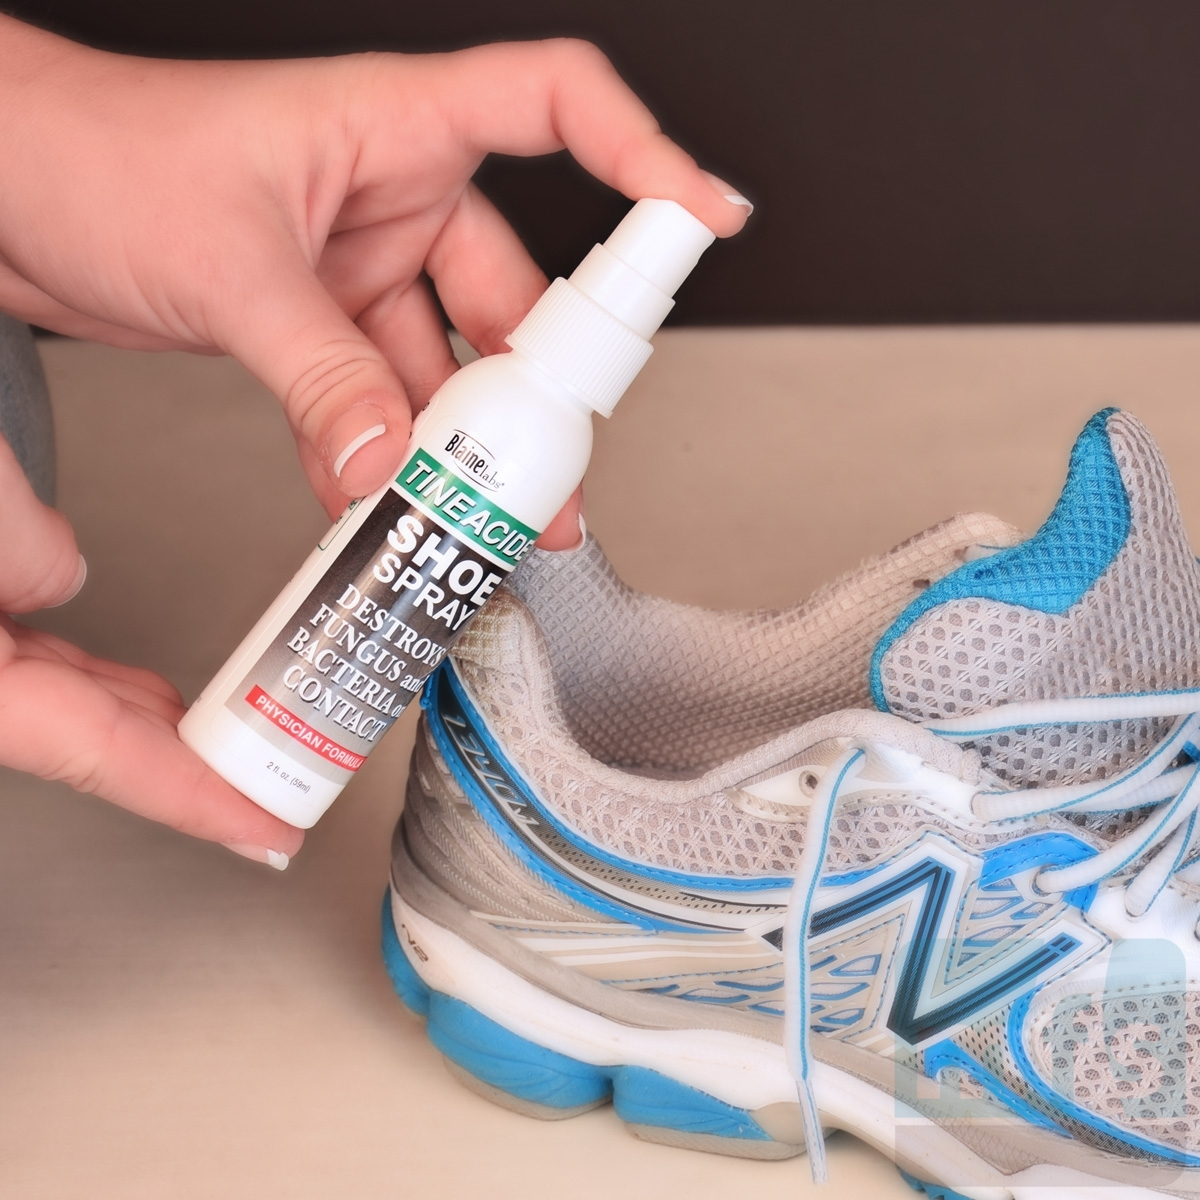 Antibacterial Spray for Shoes